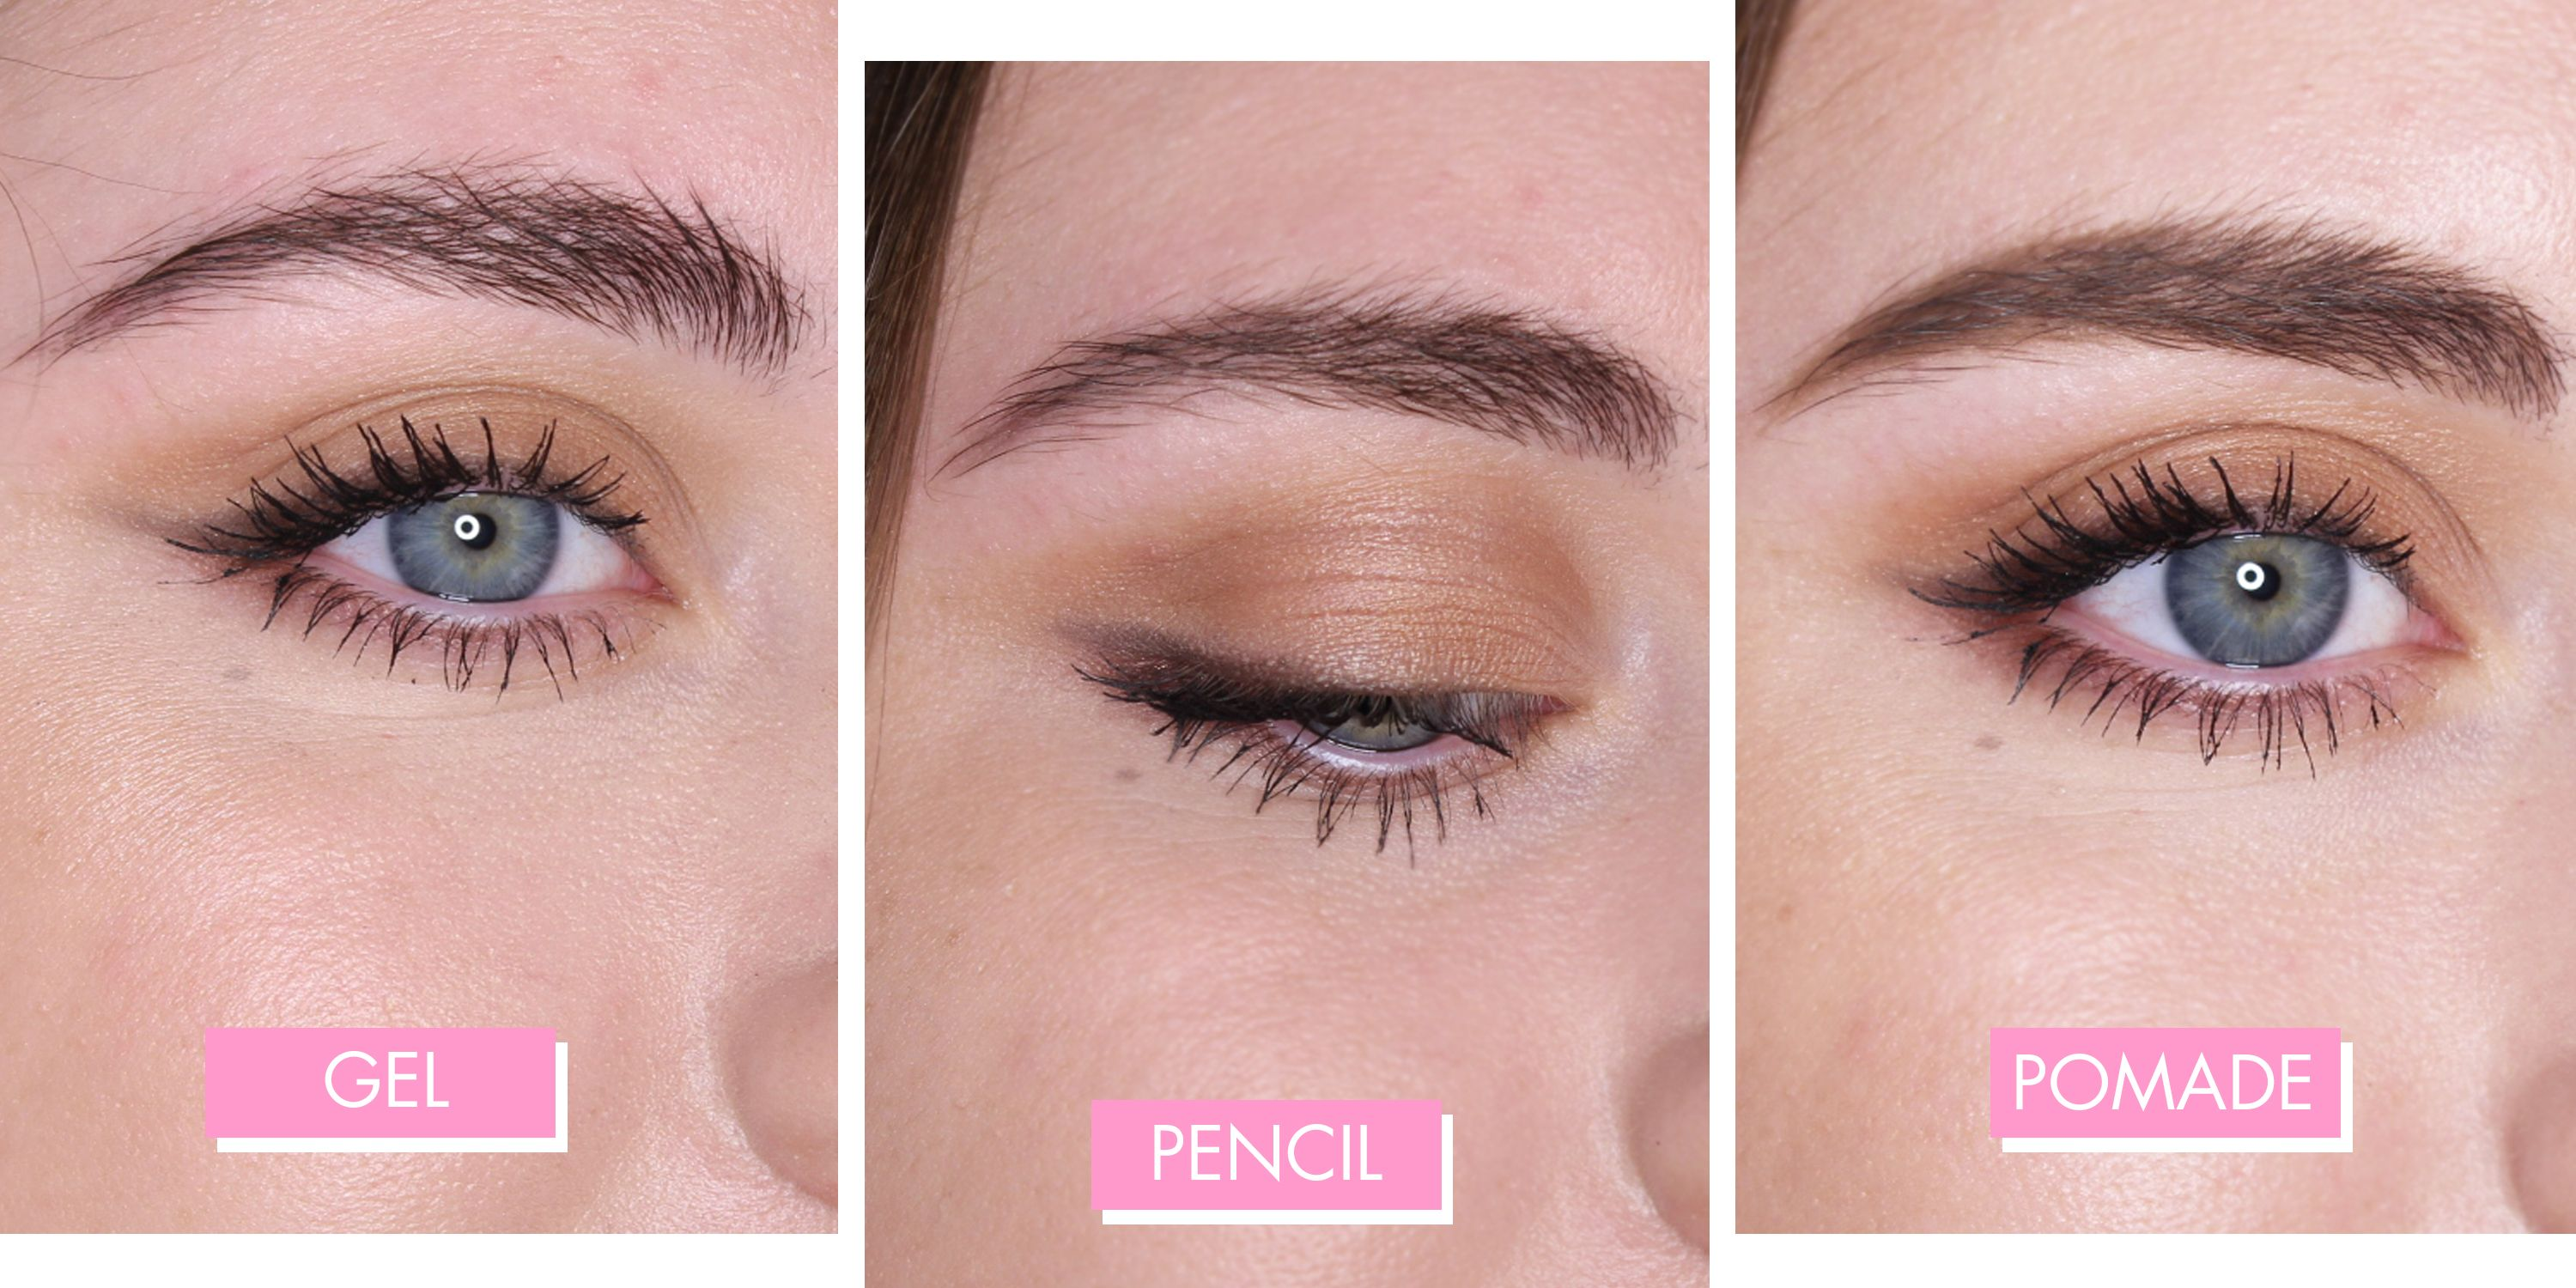 I tried 11 of the best eyebrow products and heres what they all look like irl